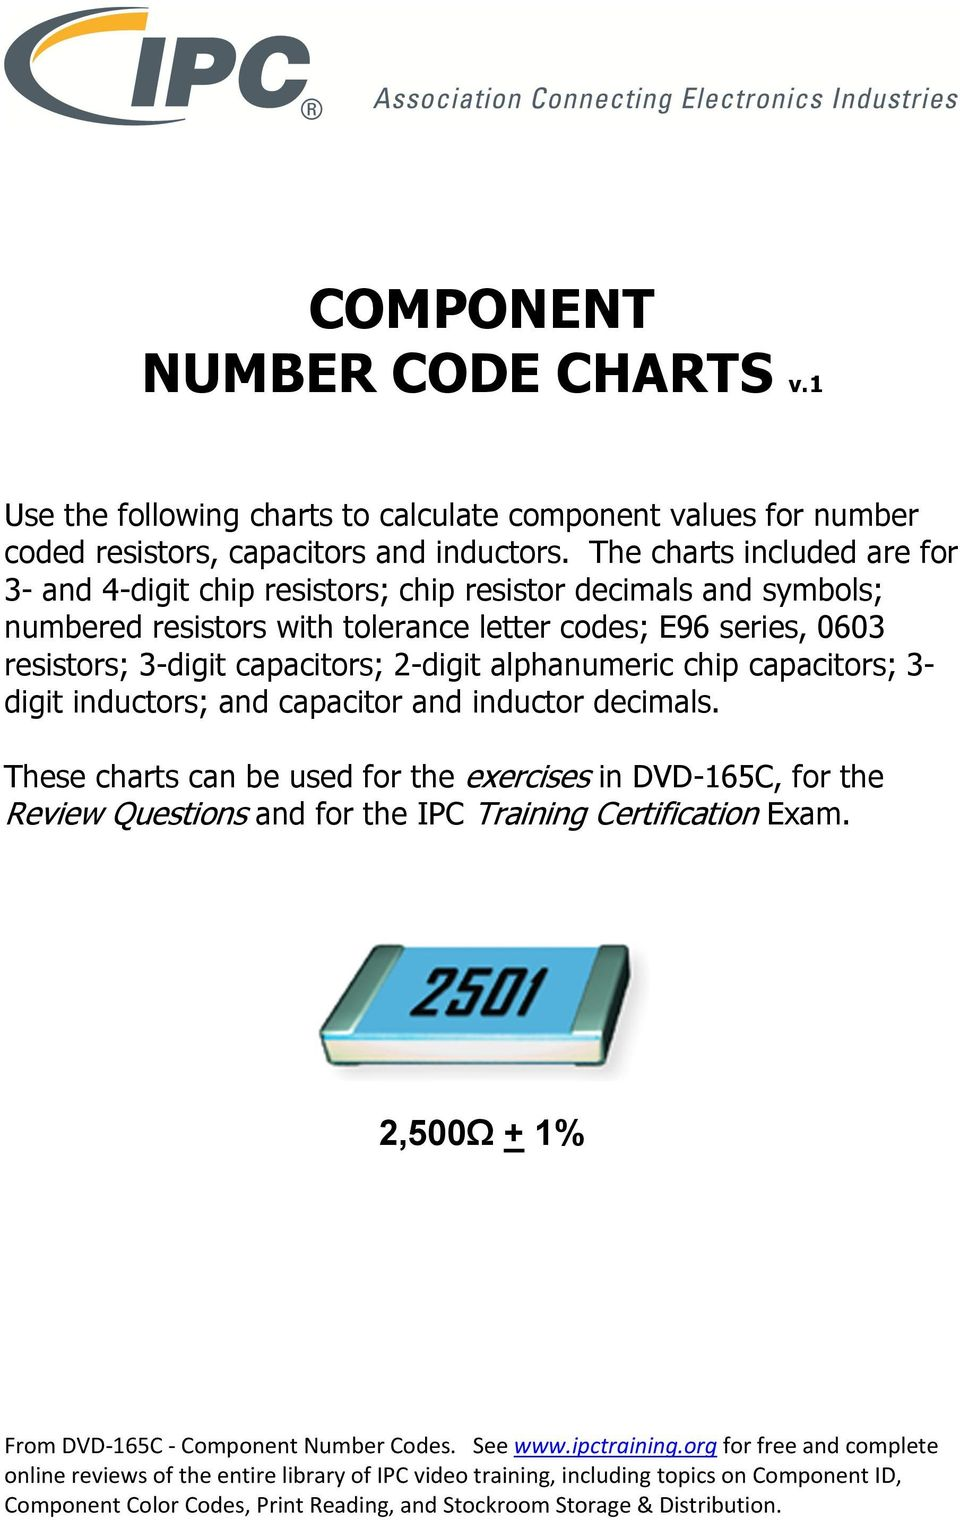 Component Number Code Charts V1 Pdf Absolute Beginners Study Guide Chapter 1 Basic Electrical Circuit Codes E96 Series 0603 Resistors 3 Digit Capacitors 2